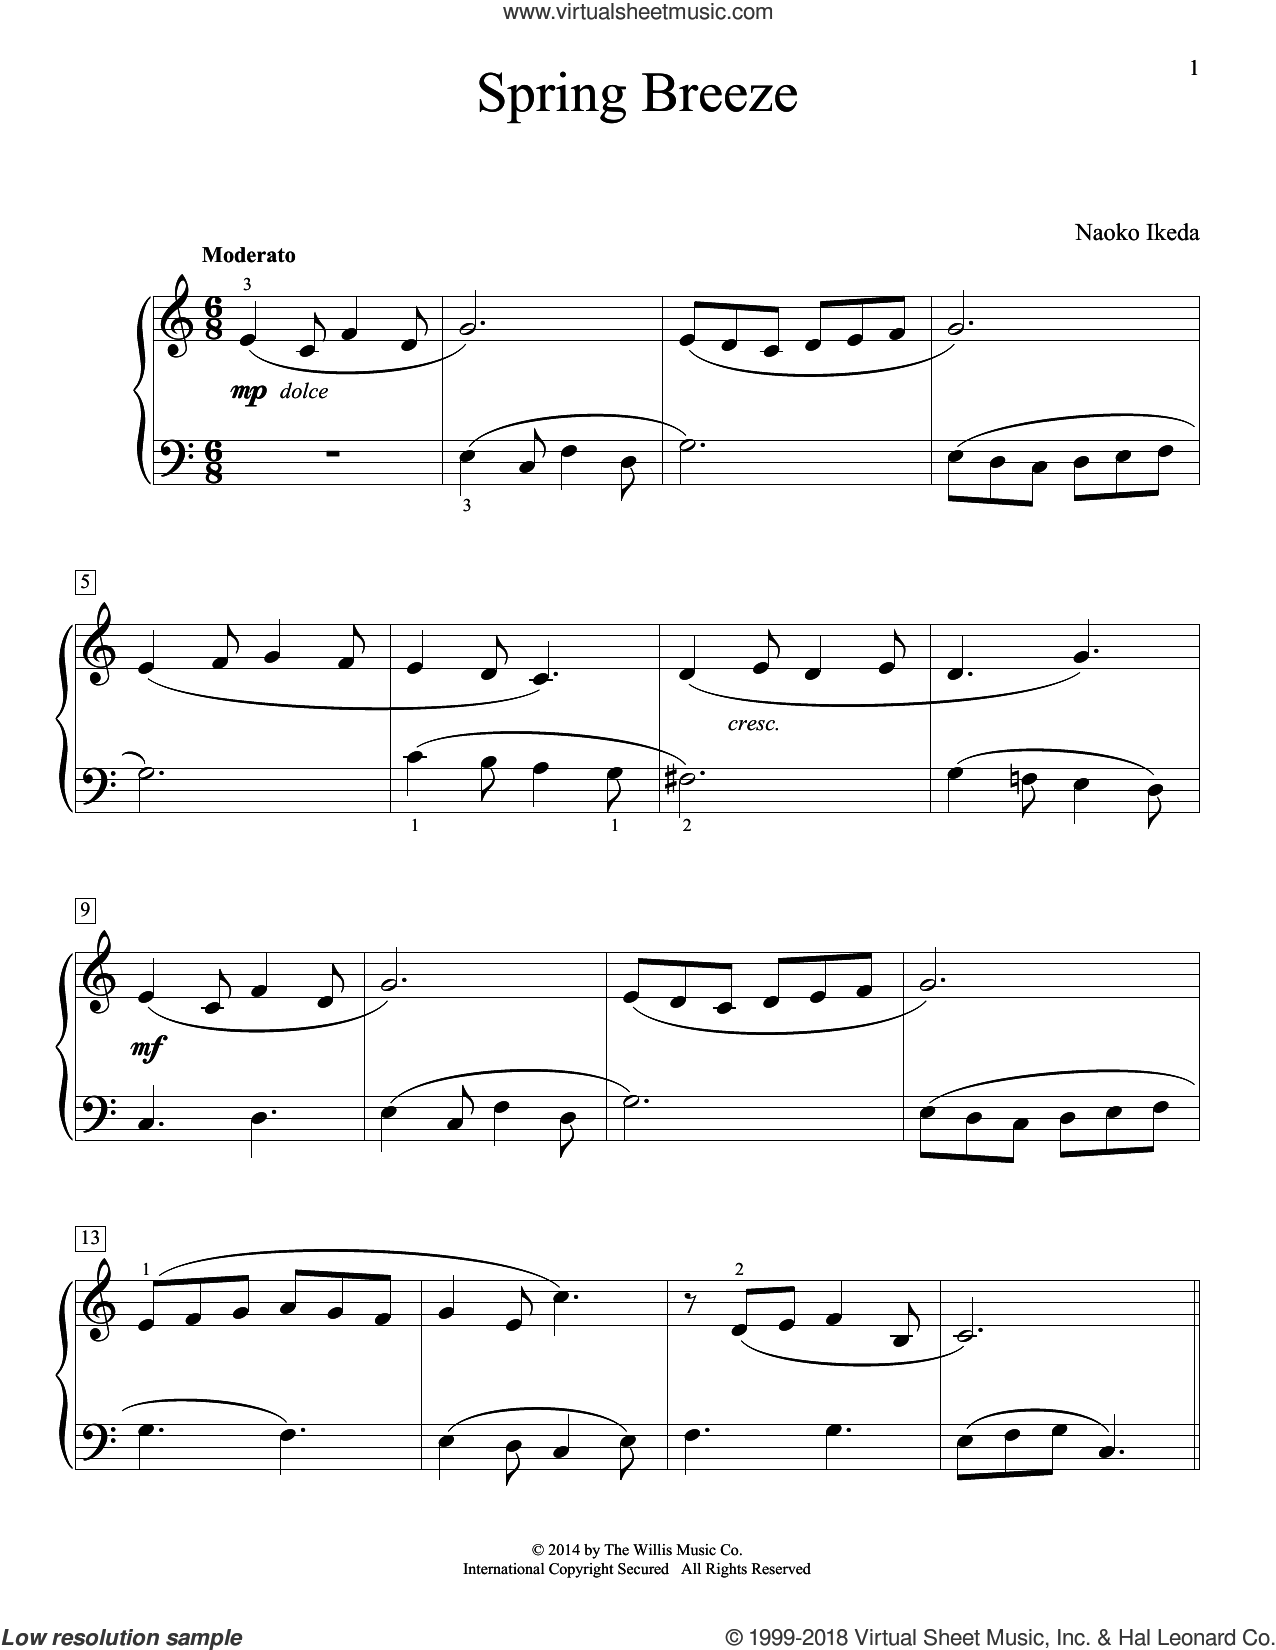 Spring Breeze sheet music for piano solo (elementary) by Naoko Ikeda. Score Image Preview.